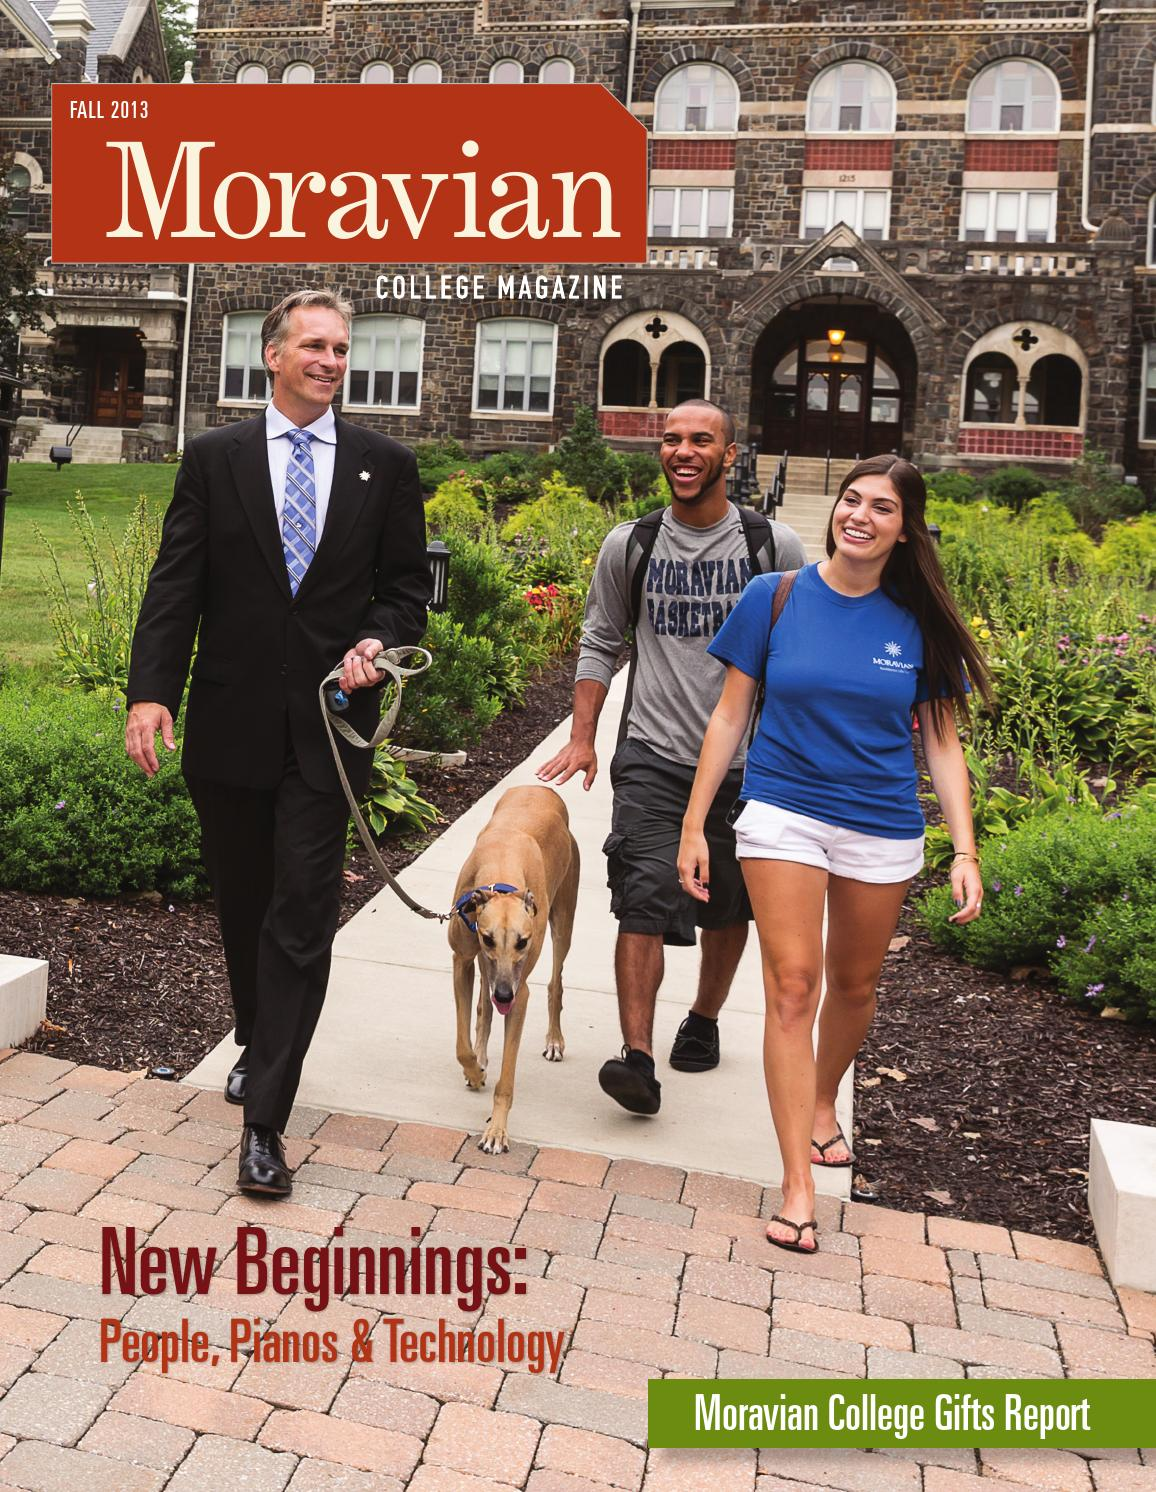 Moravian College Magazine Fall 2013 By Moravian College Issuu